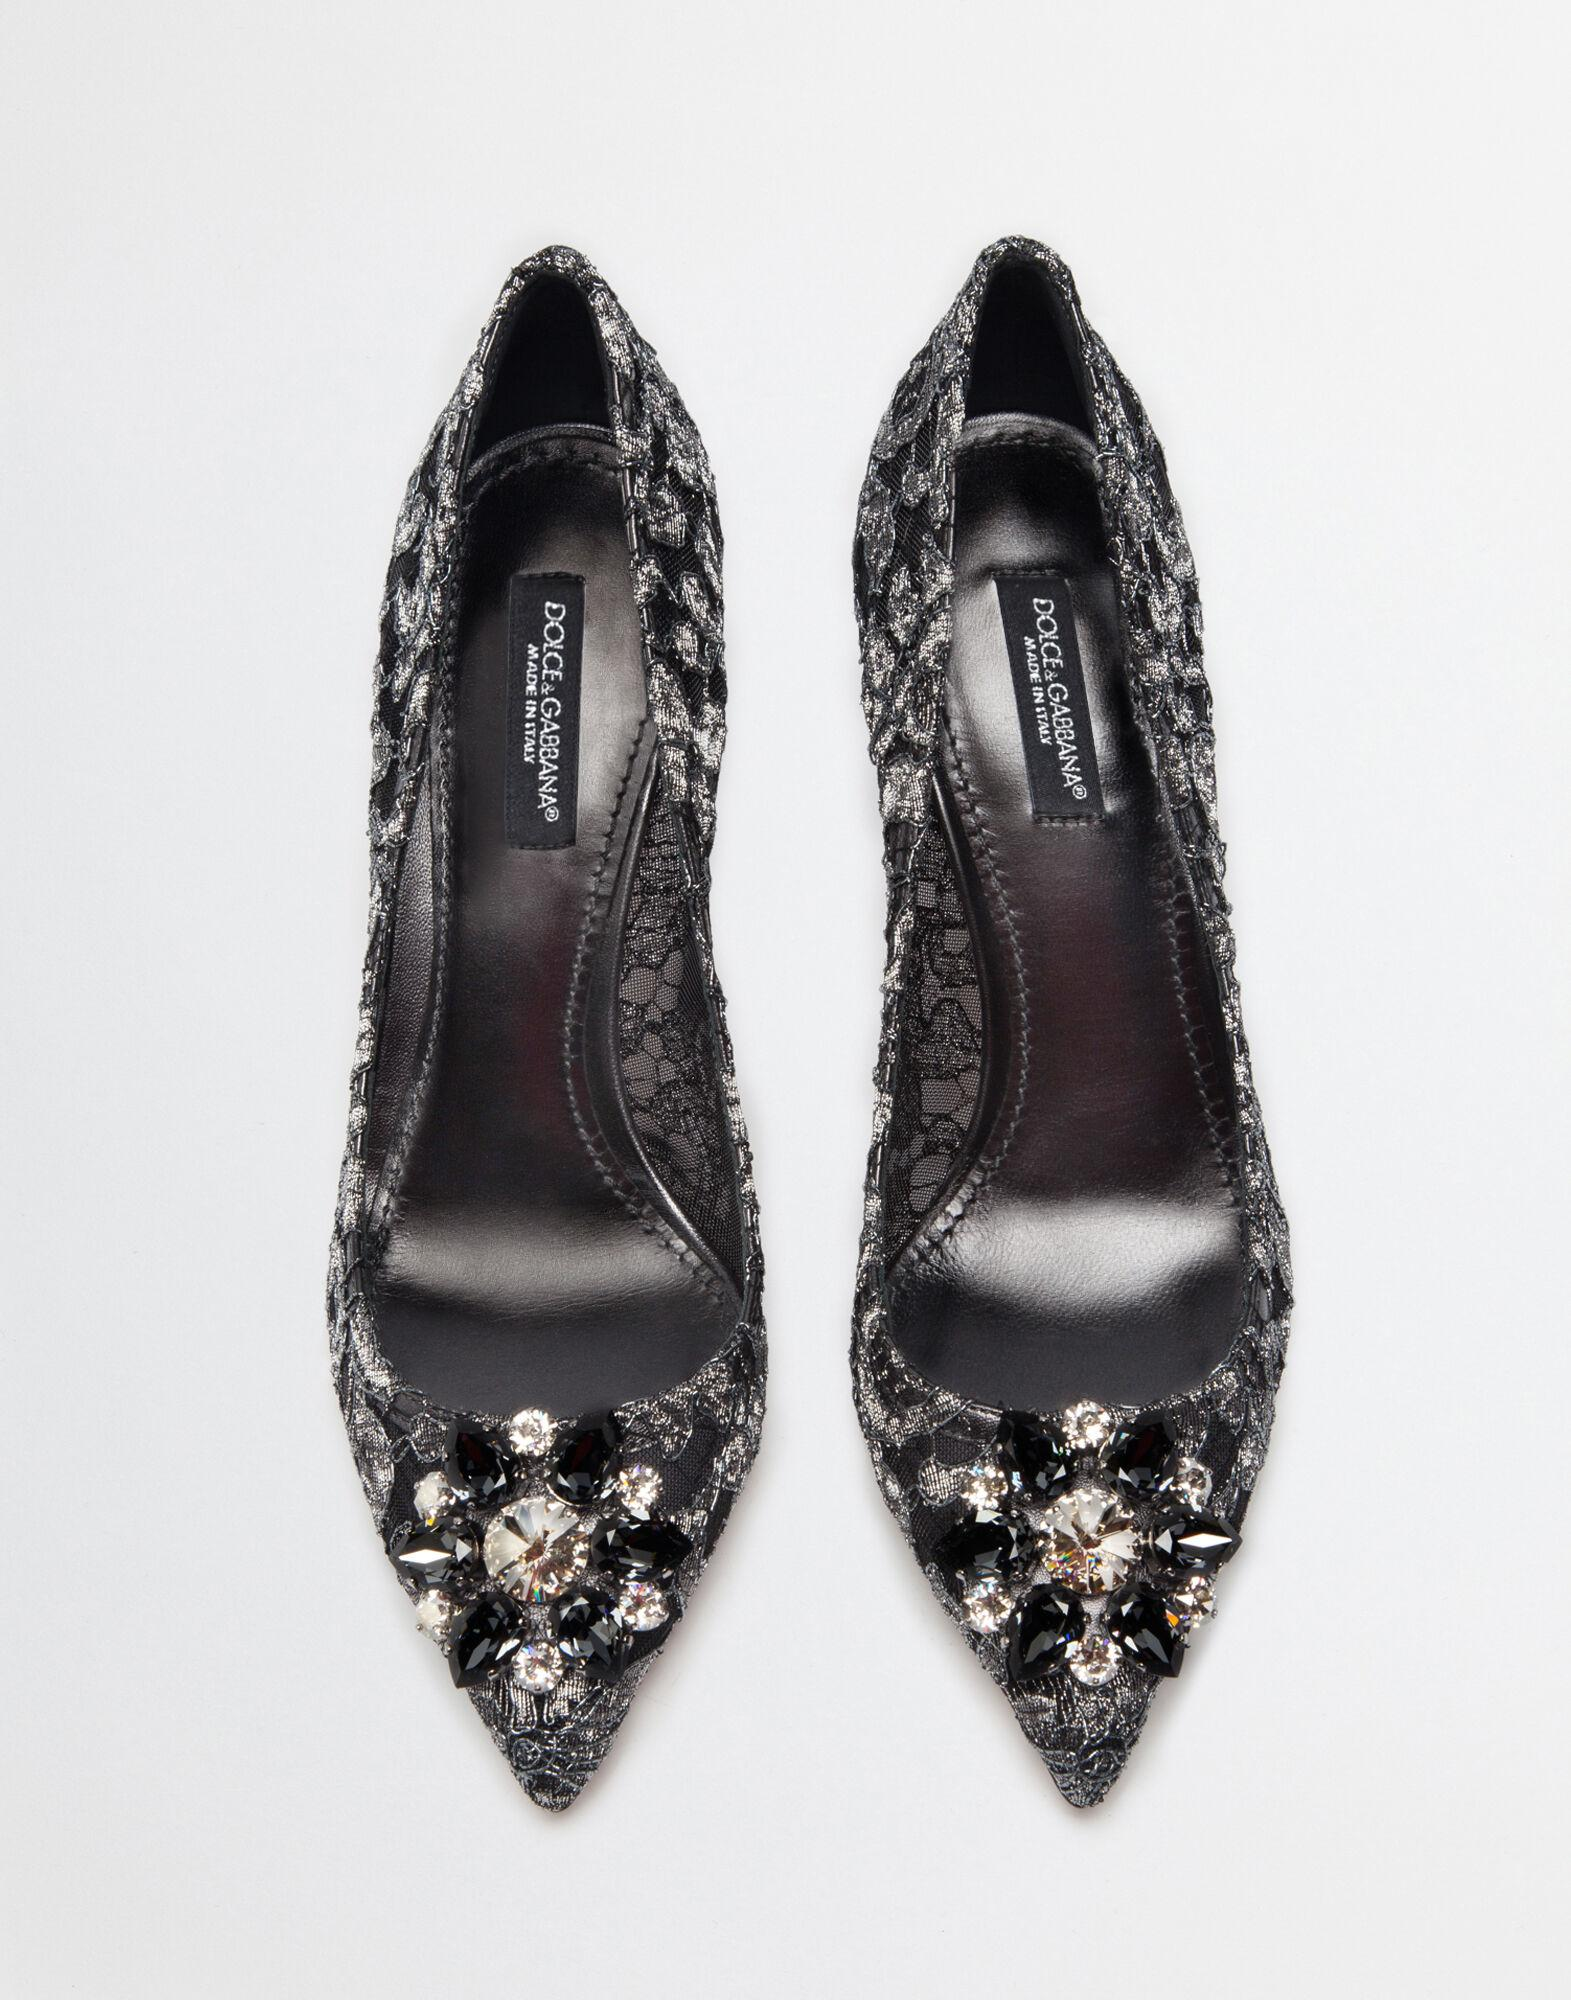 Pump in Taormina lurex lace with crystals 2